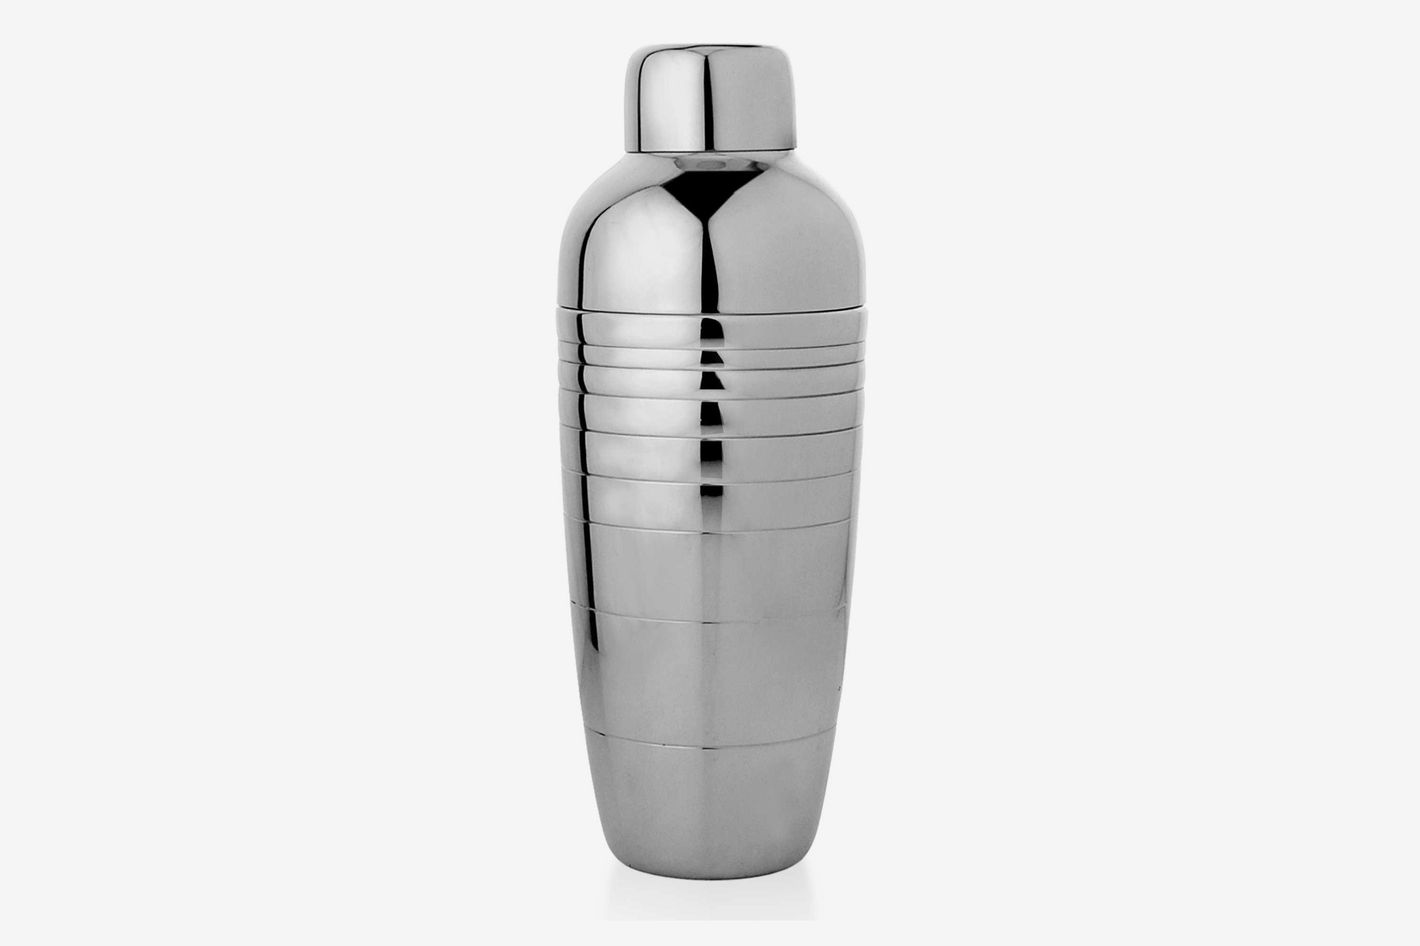 ed265a7af892 23 Stylish Cocktail Shakers for Home Bartenders: 2018